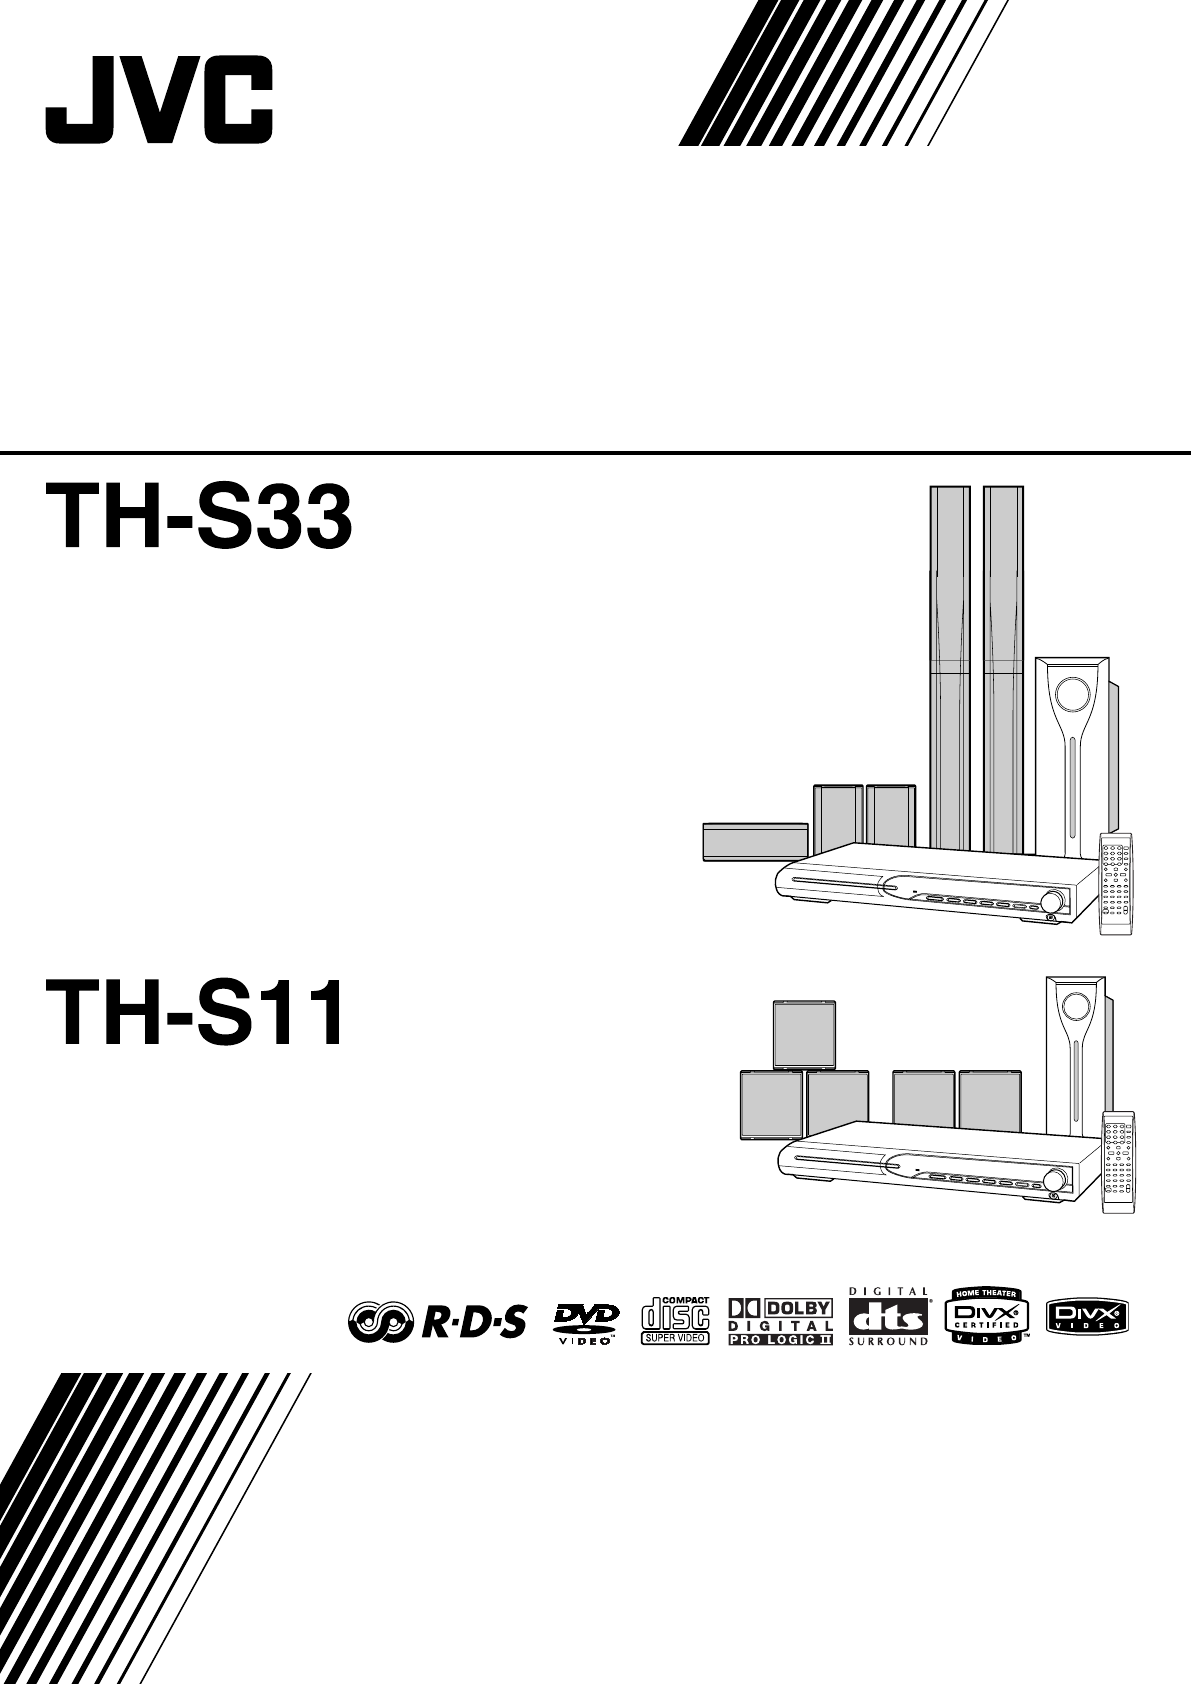 Jvc Home Theater System Xv Ths11 User Guide